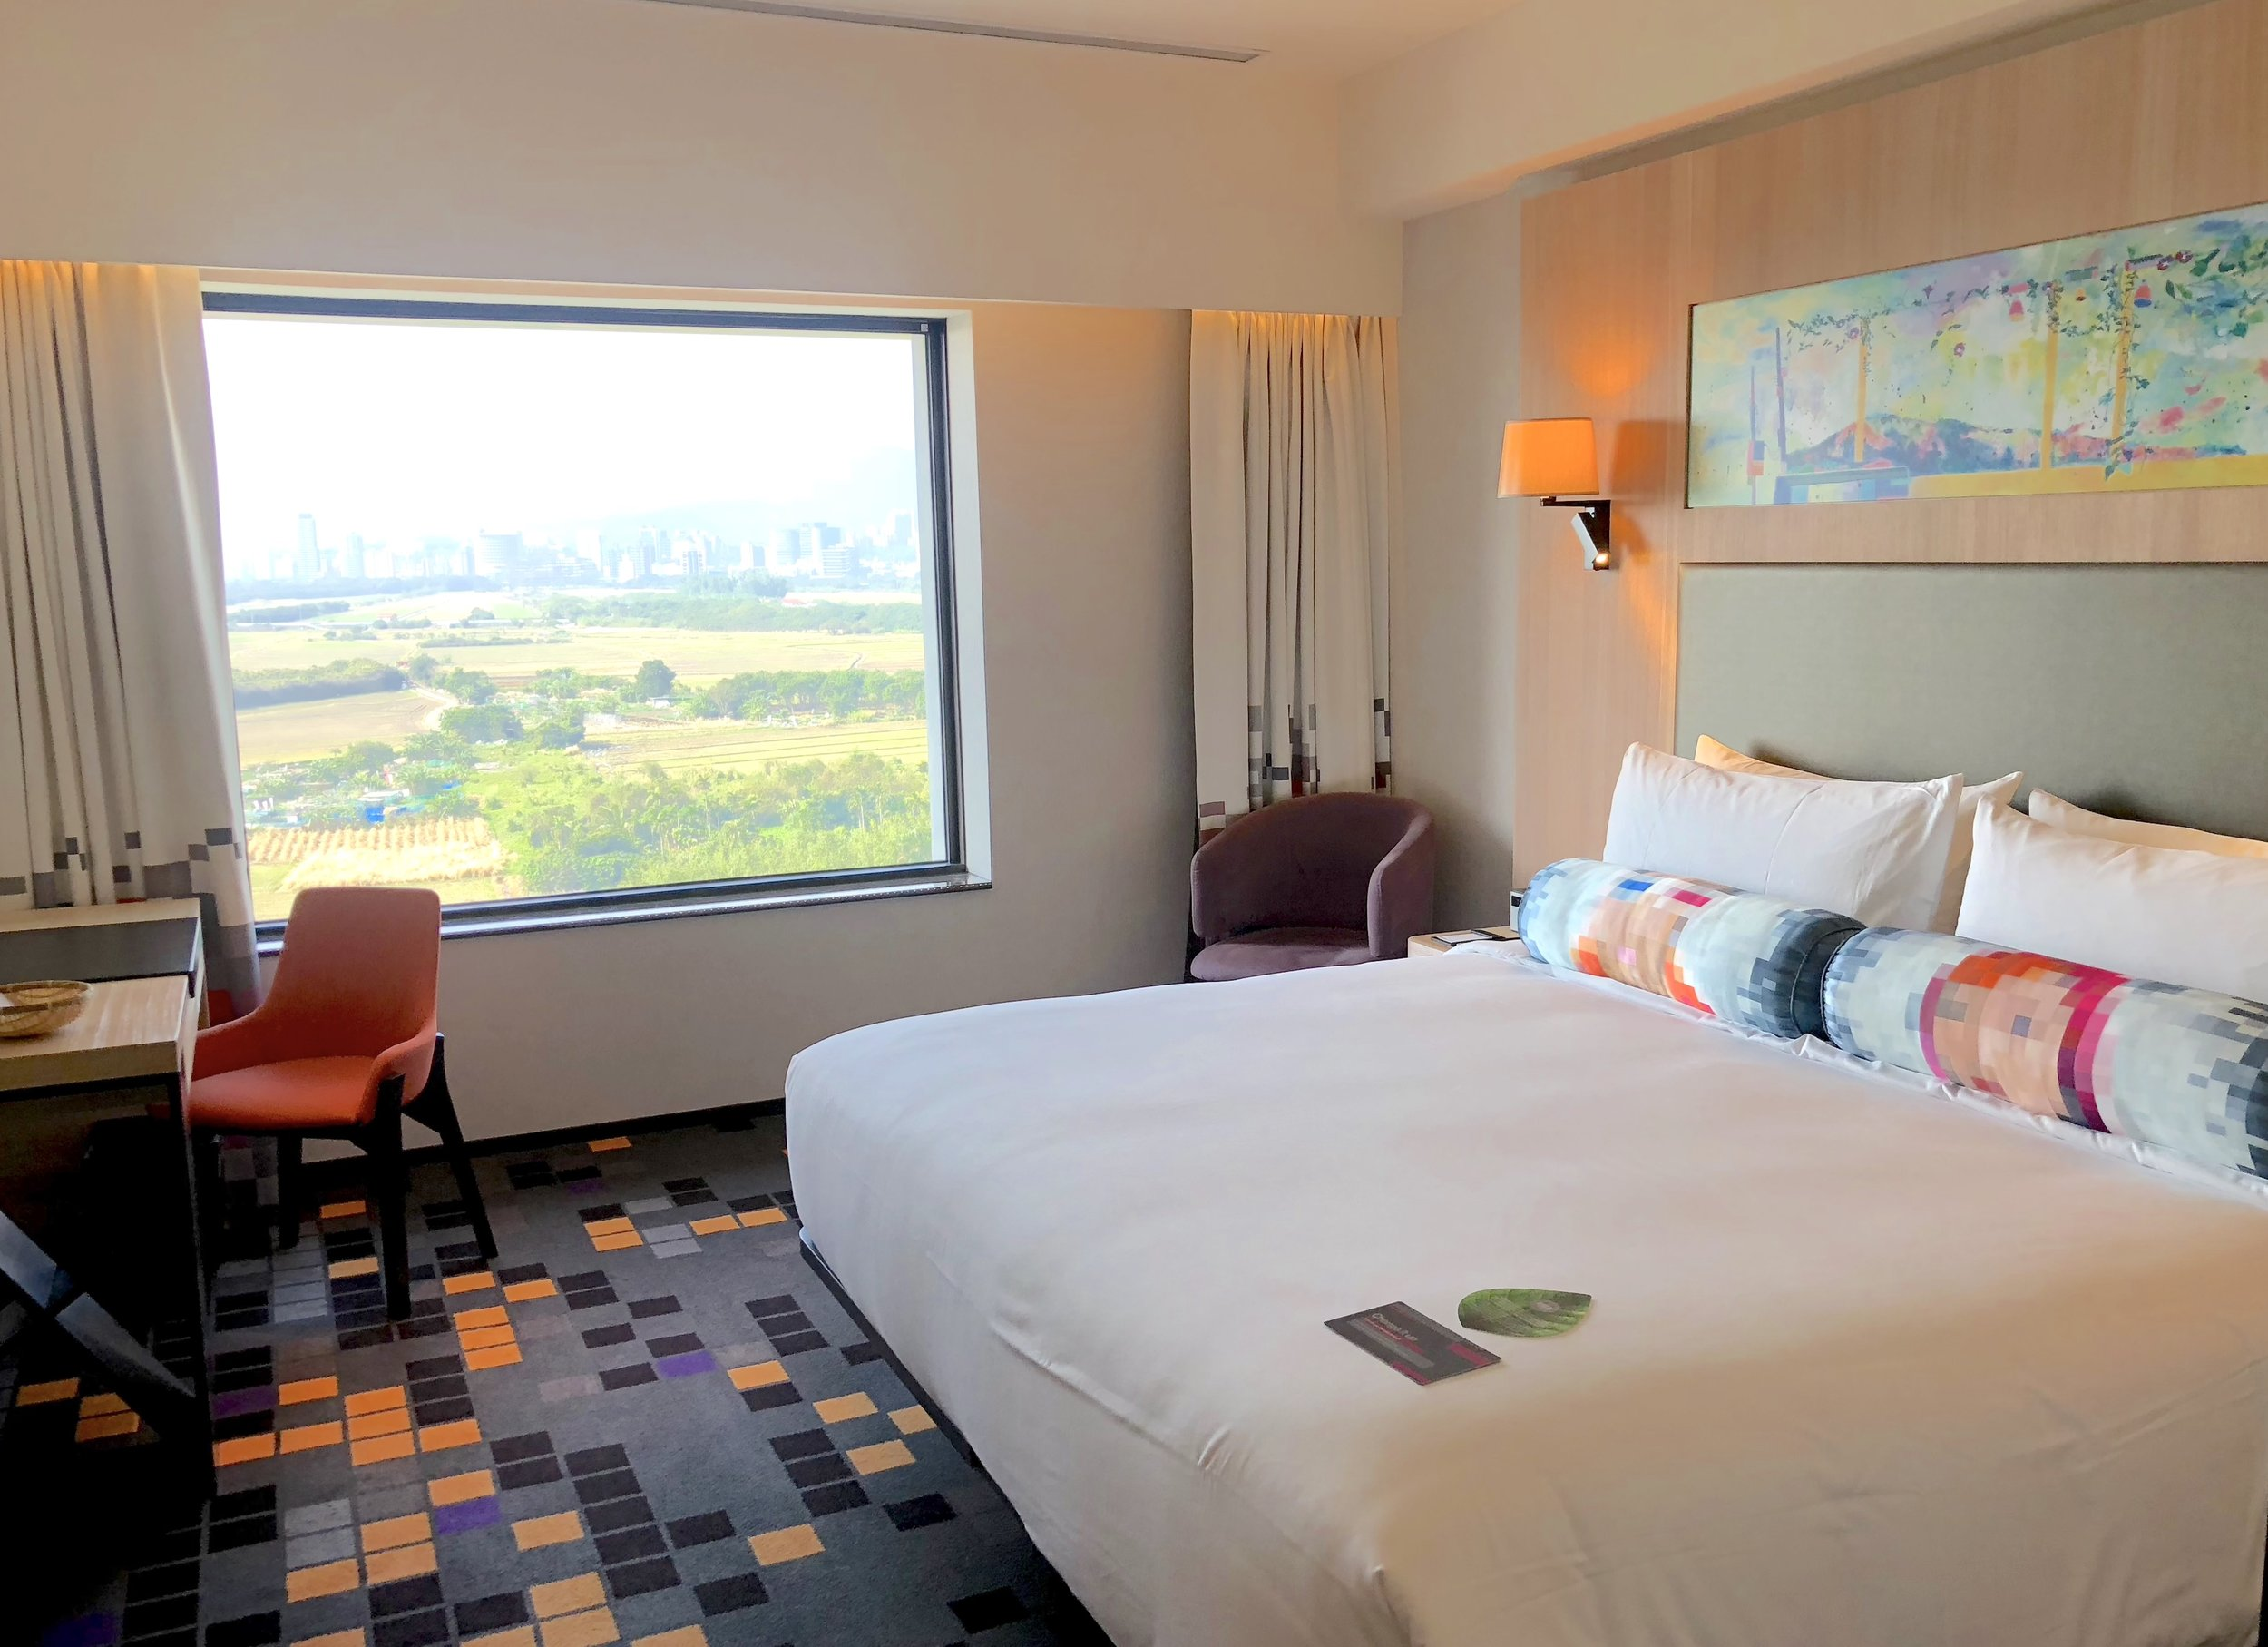 Decent stay at Aloft Beitou in Taiwan